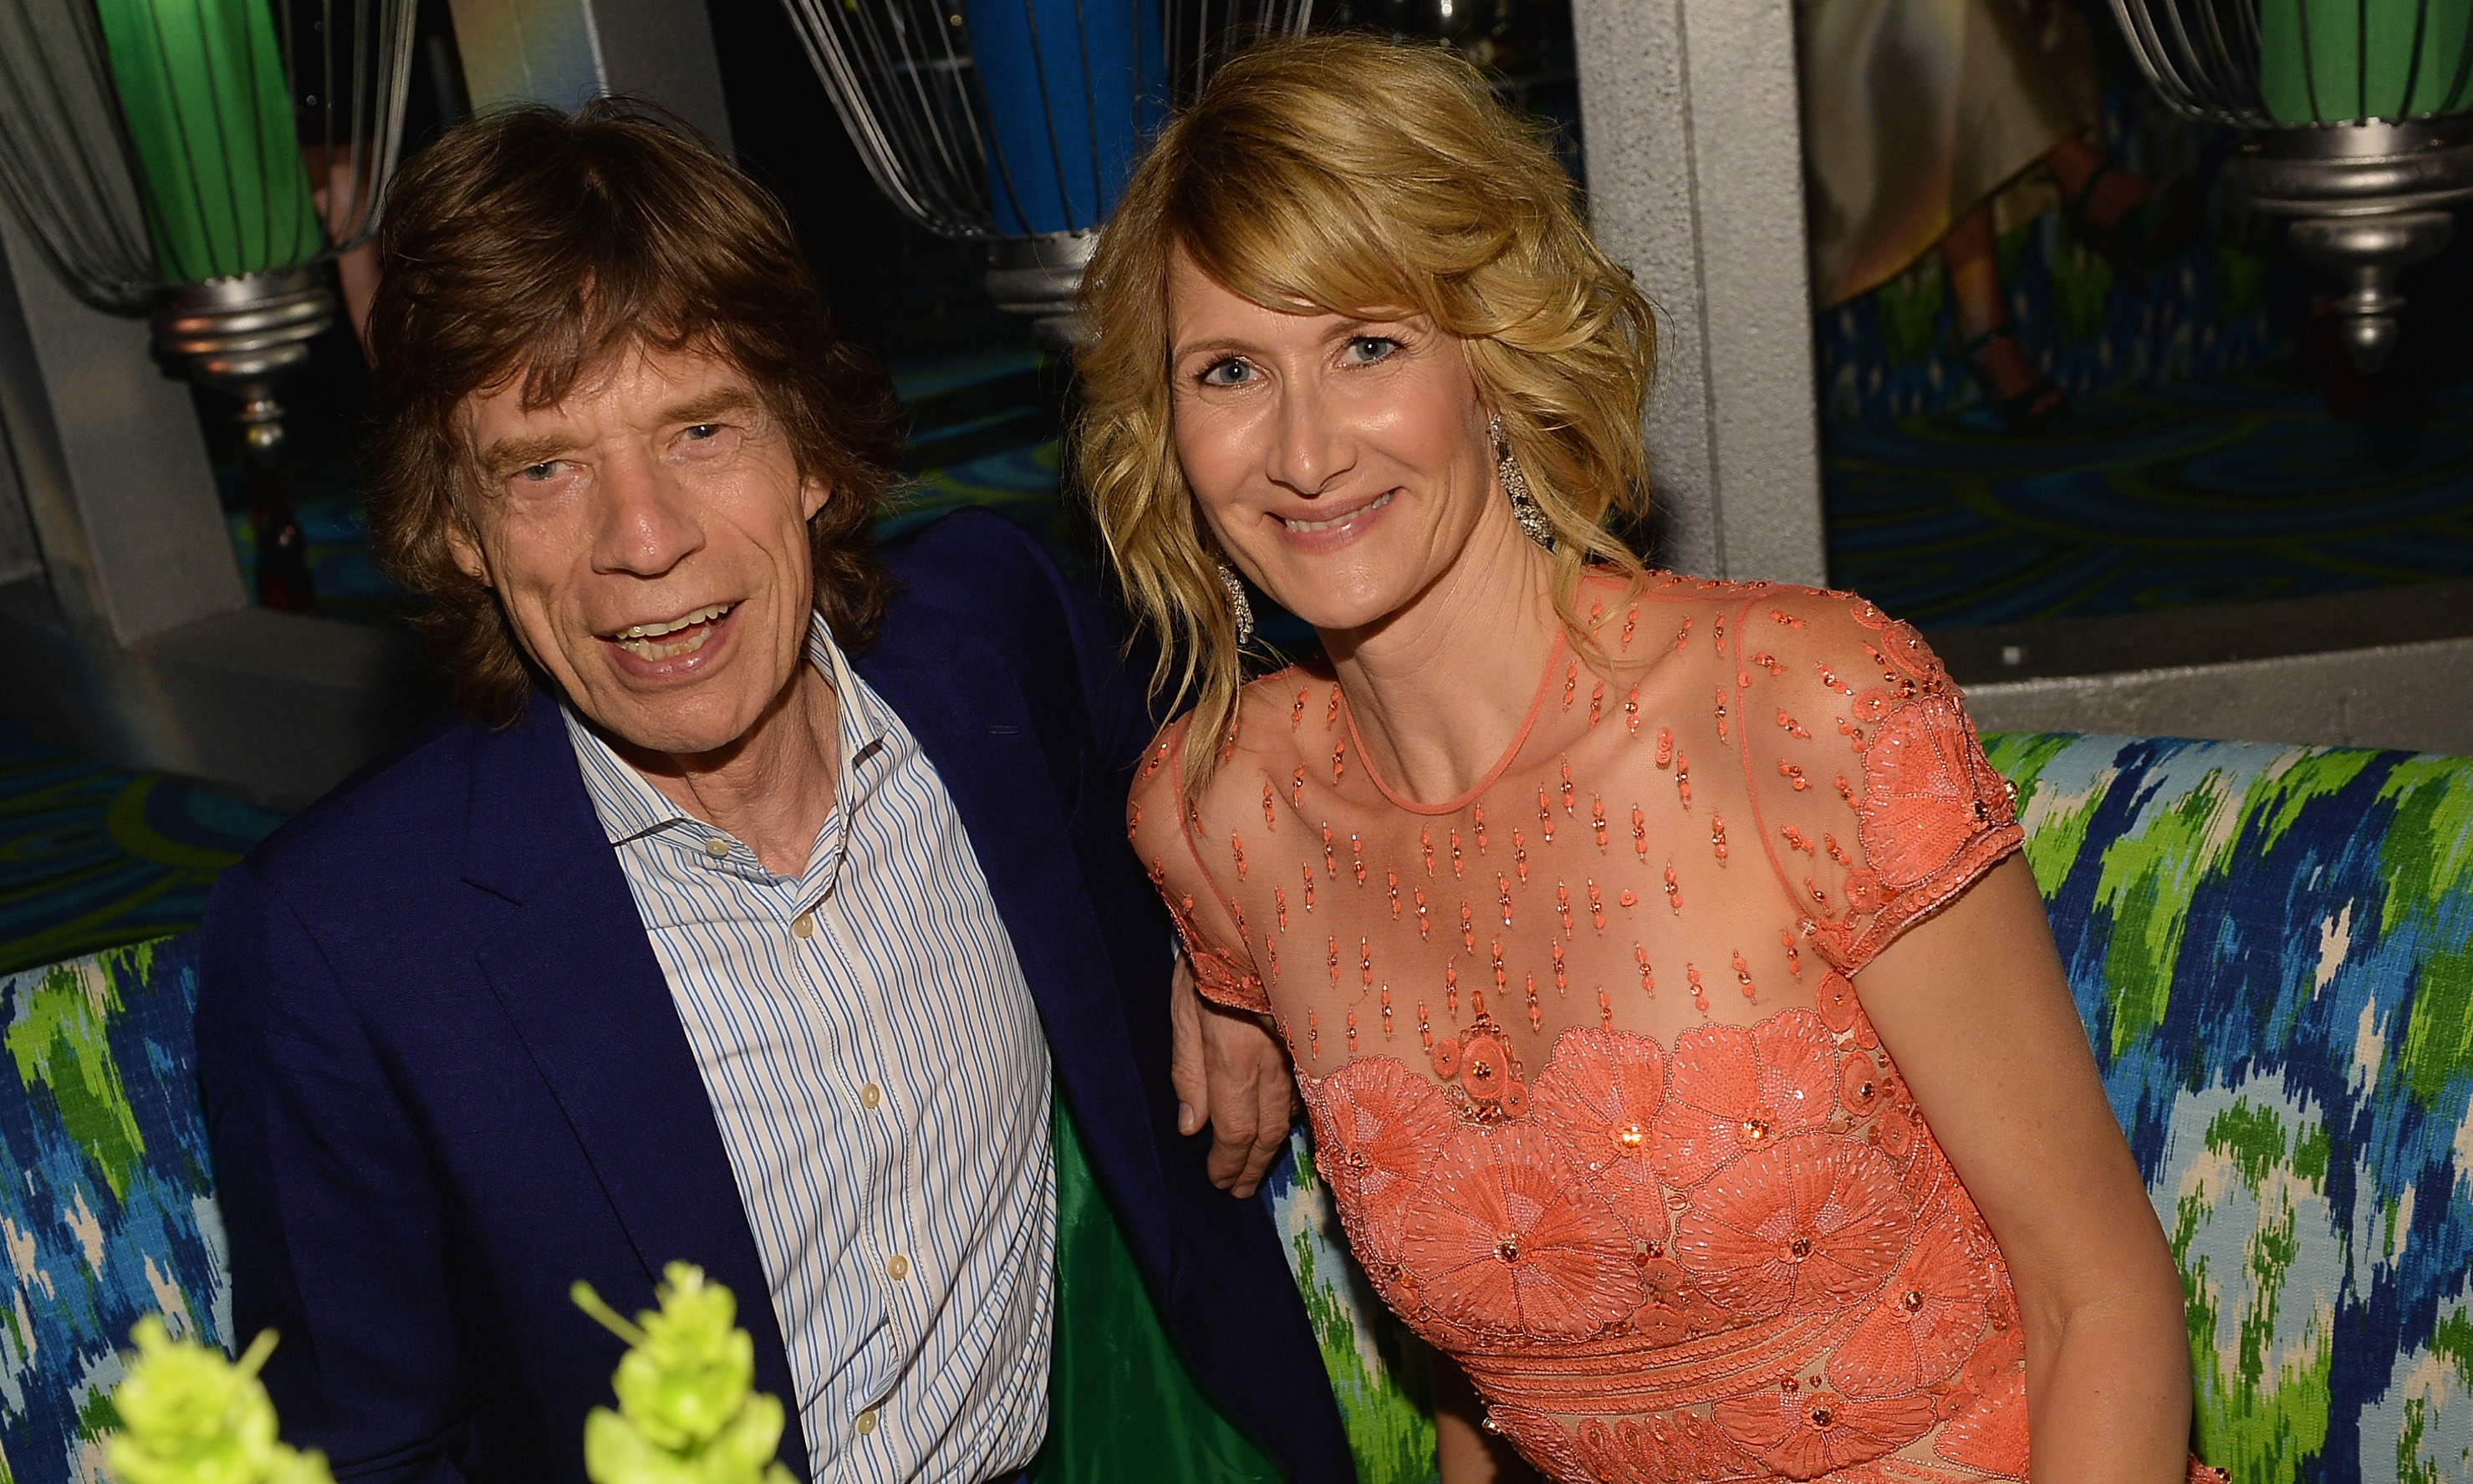 Great-grandfather-to-be Mick Jagger chats with Enlightened actress Laura Dern at the HBO after-party.